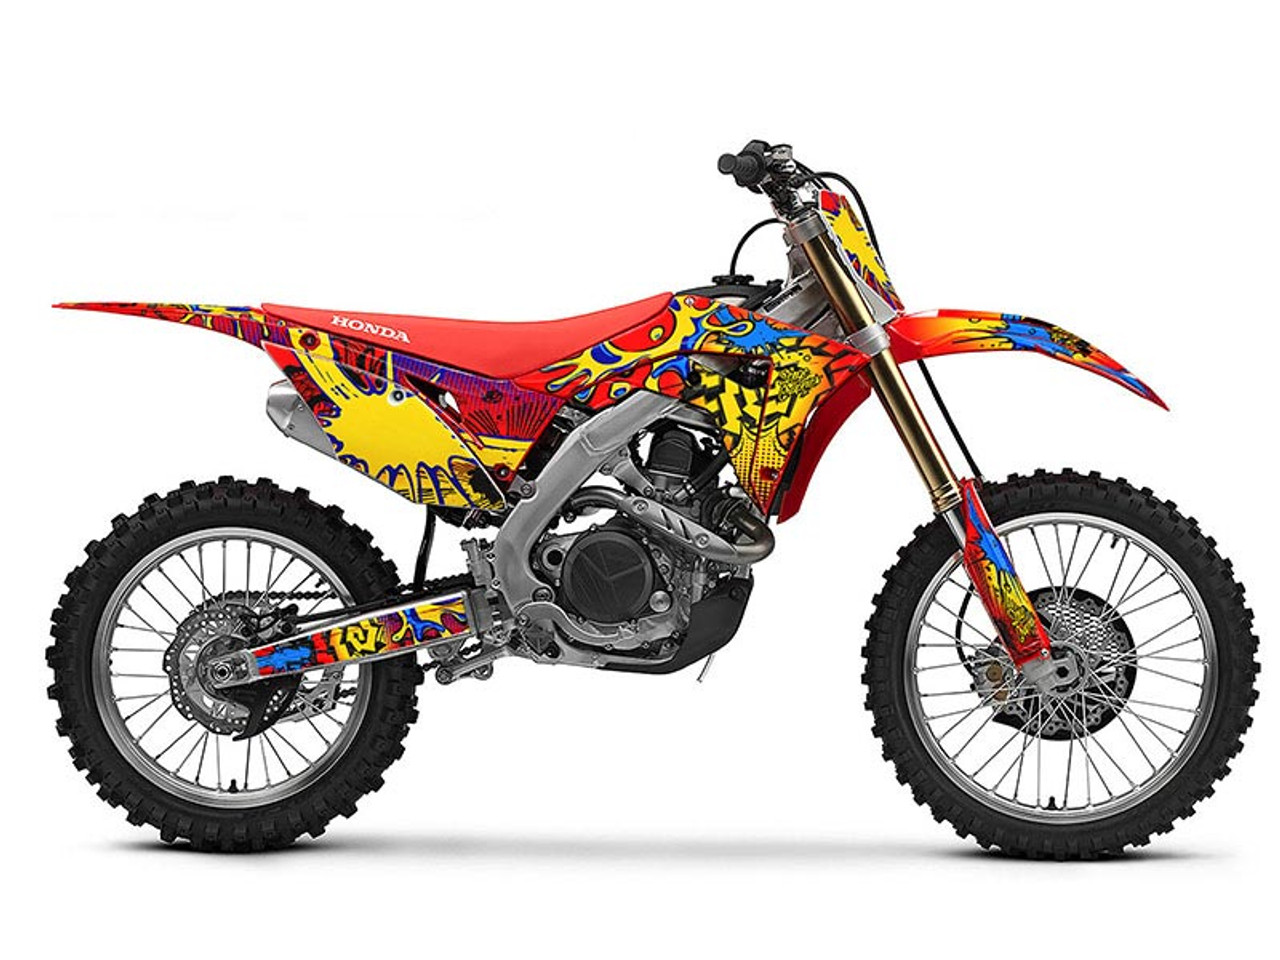 ZANY Graphics Kit for CRF 150R